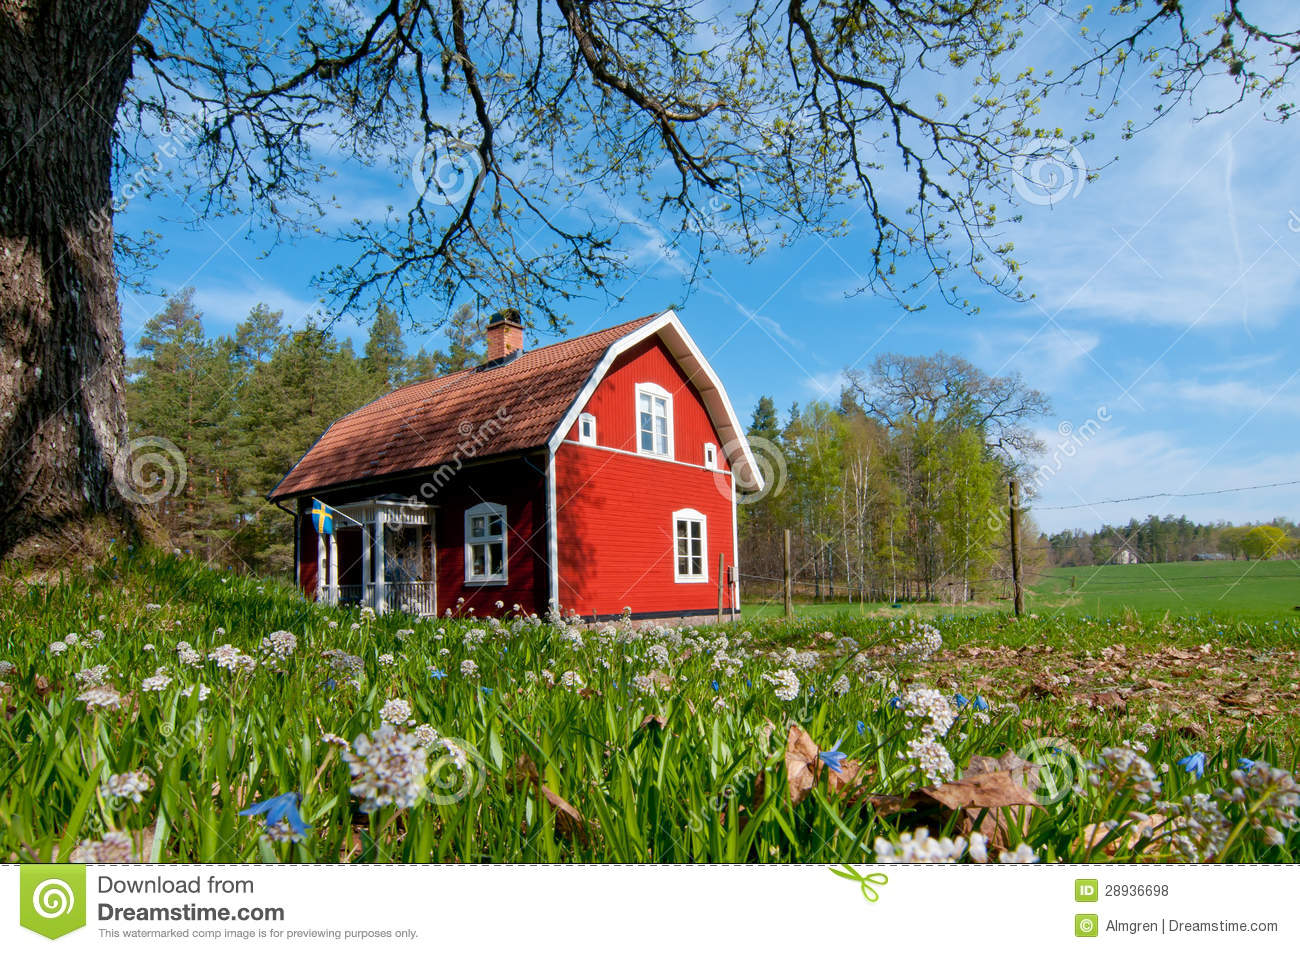 Red wooden house in Sweden in spring